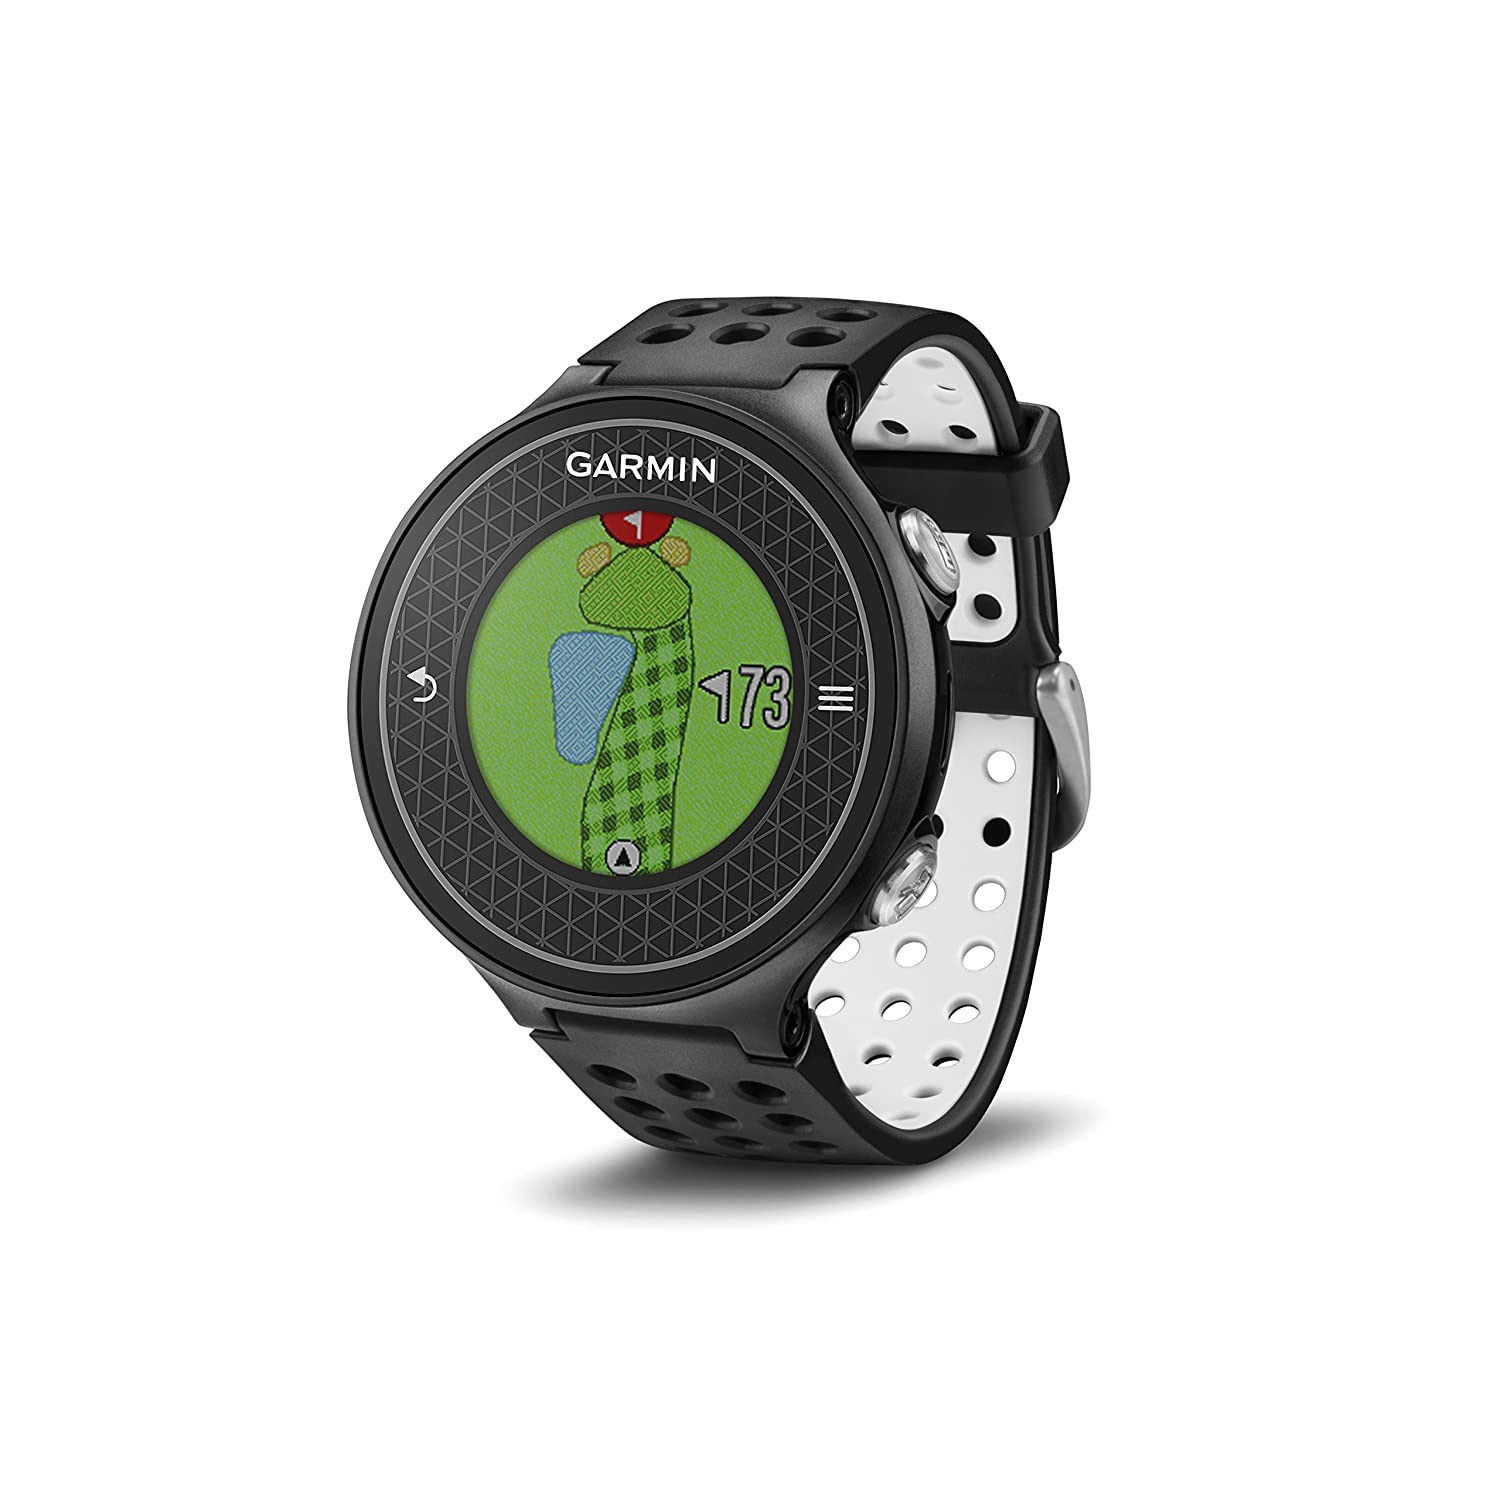 GARMIN APPROACH S6 REVIEWS